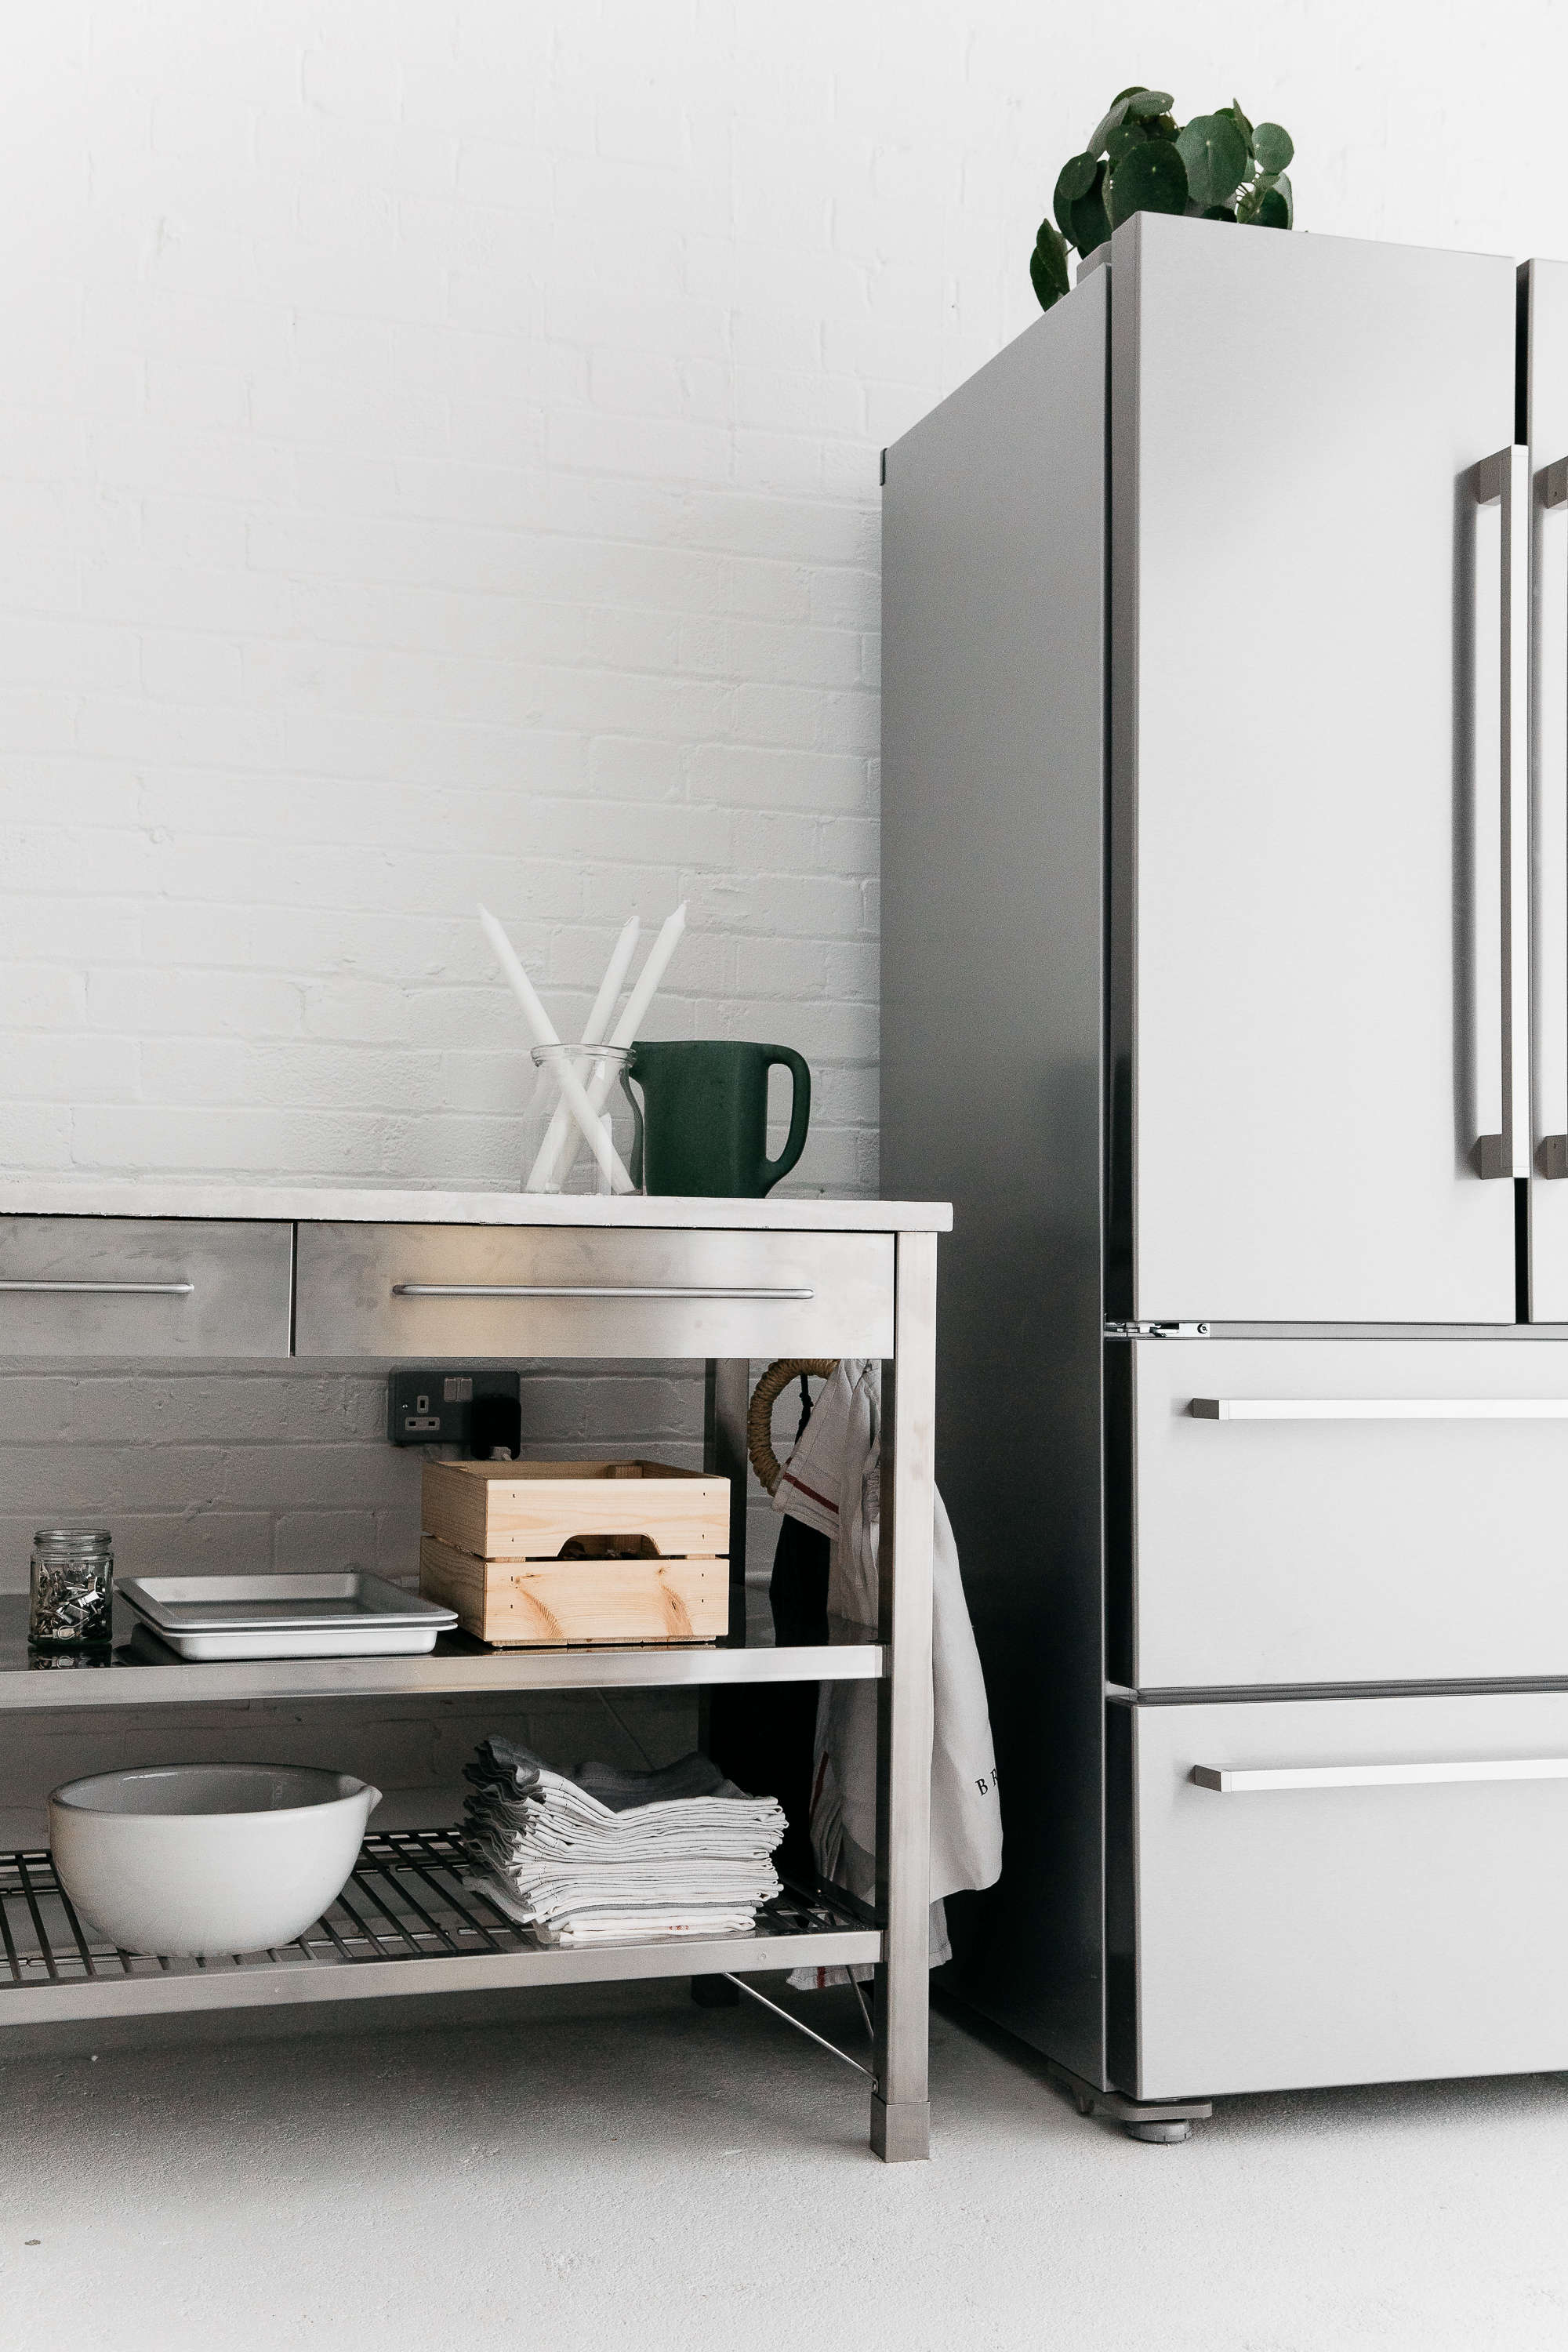 Kitchen of the Week: An Artful Ikea Hack Kitchen by Two ...